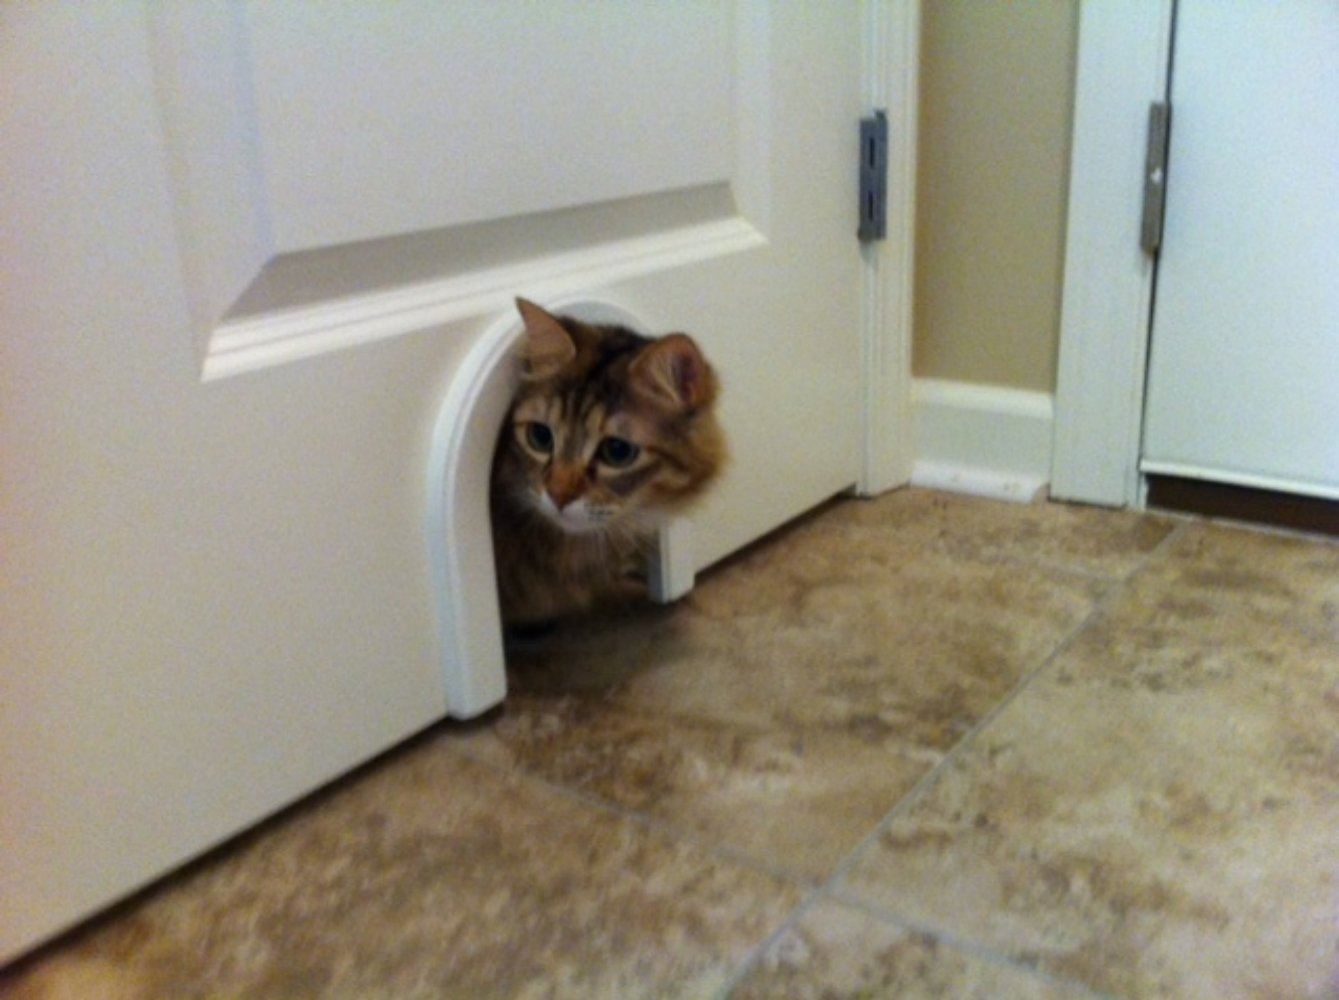 Cat Door - The Original Cathole Interior Pet Door - The Only Cat Door With A Cleaning / Grooming Brush. by CATHOLE (Image #3)